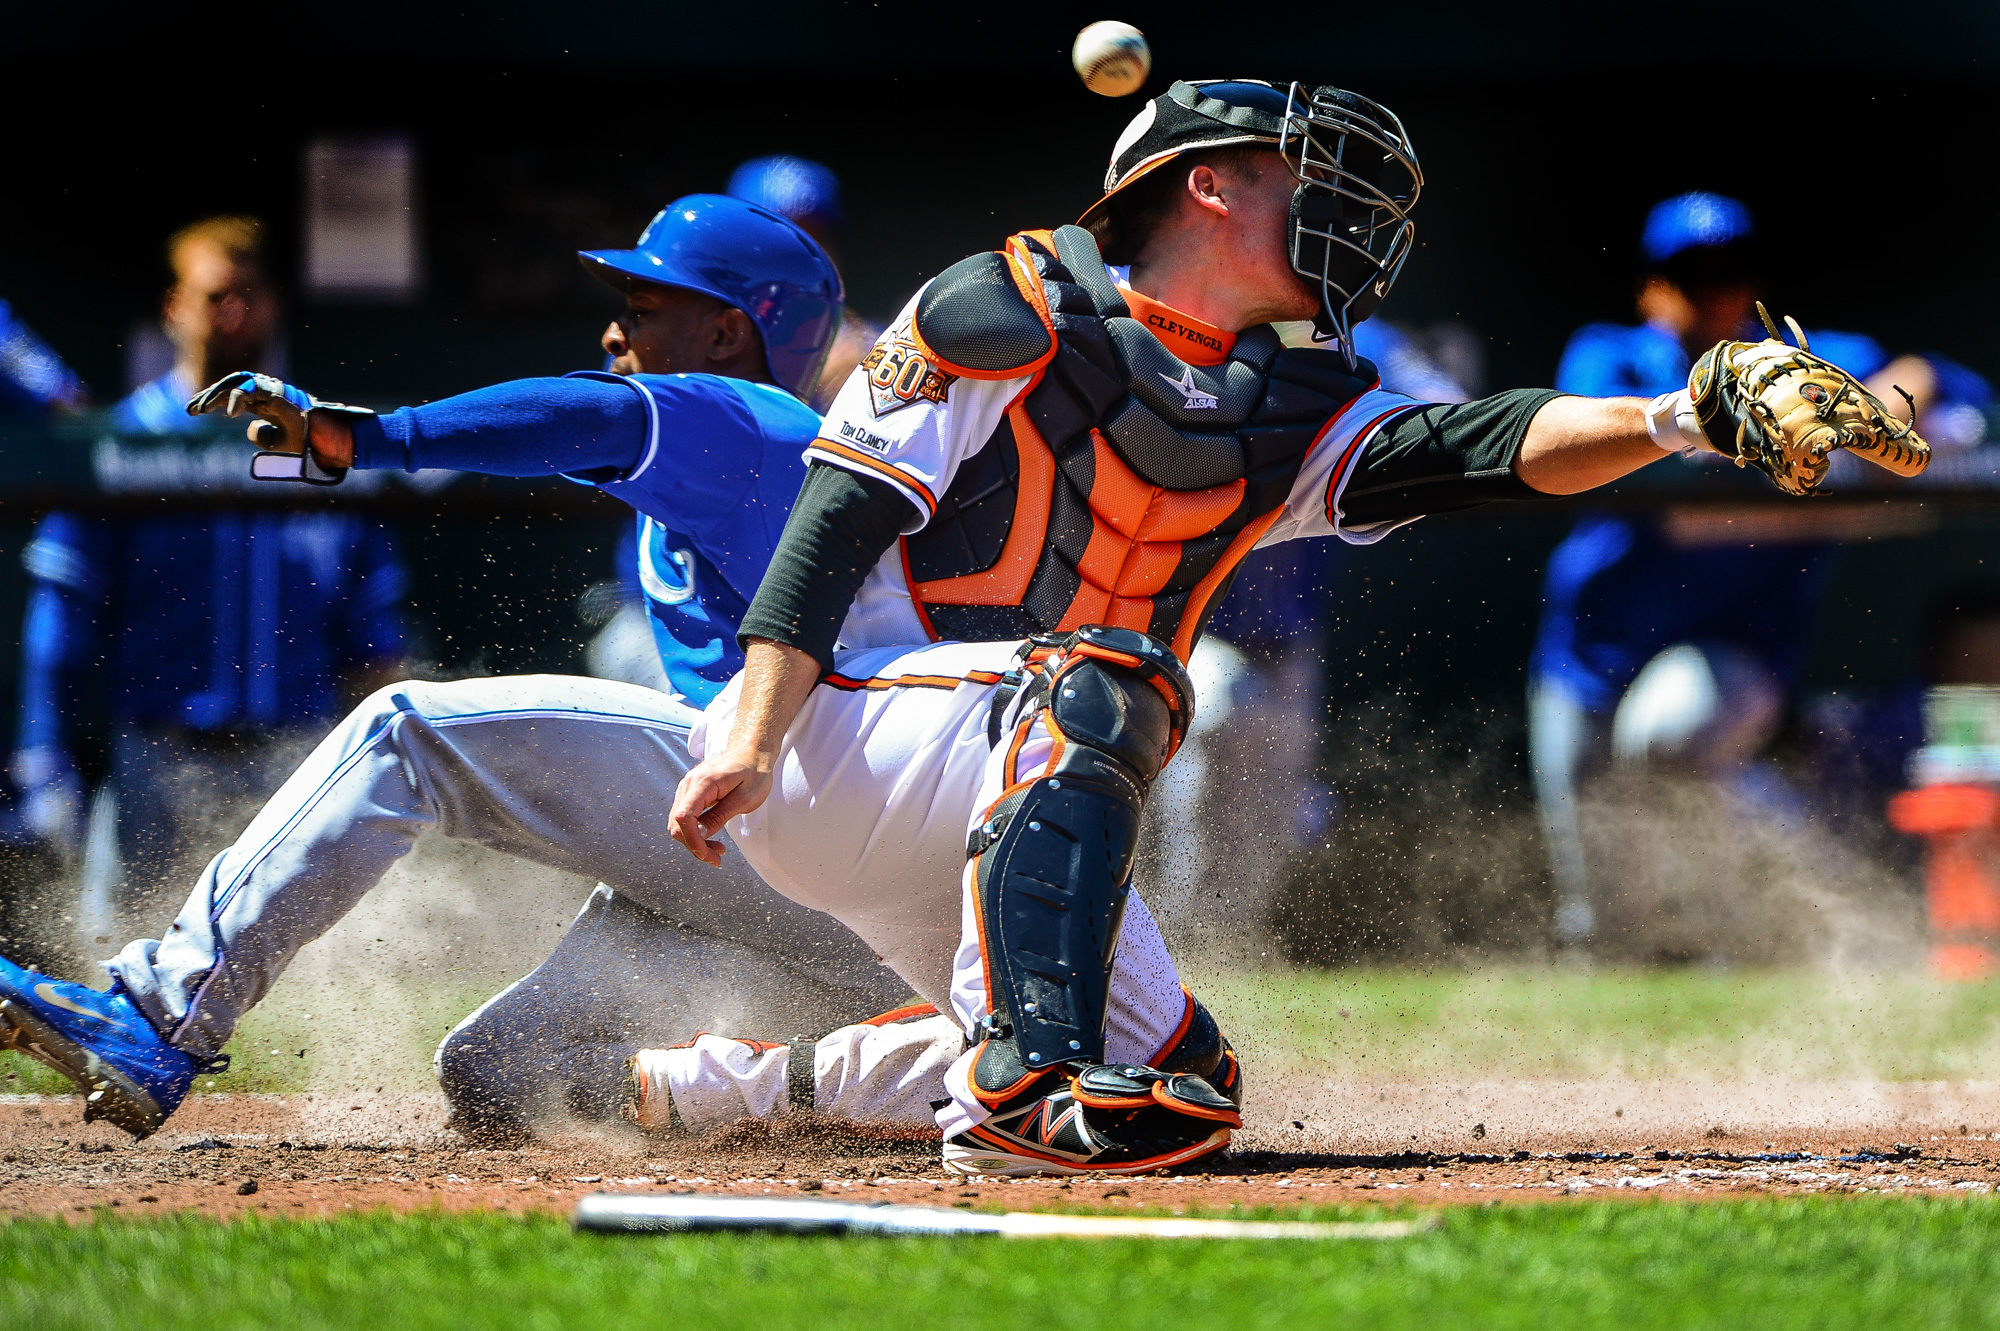 Baltimore Orioles catcher Steve Clevenger misses the play at home while Jarrod Dyson of the Kansas City Royals scores at Oriole Park in Camden Yards in Baltimore, Md. on April 27, 2014.